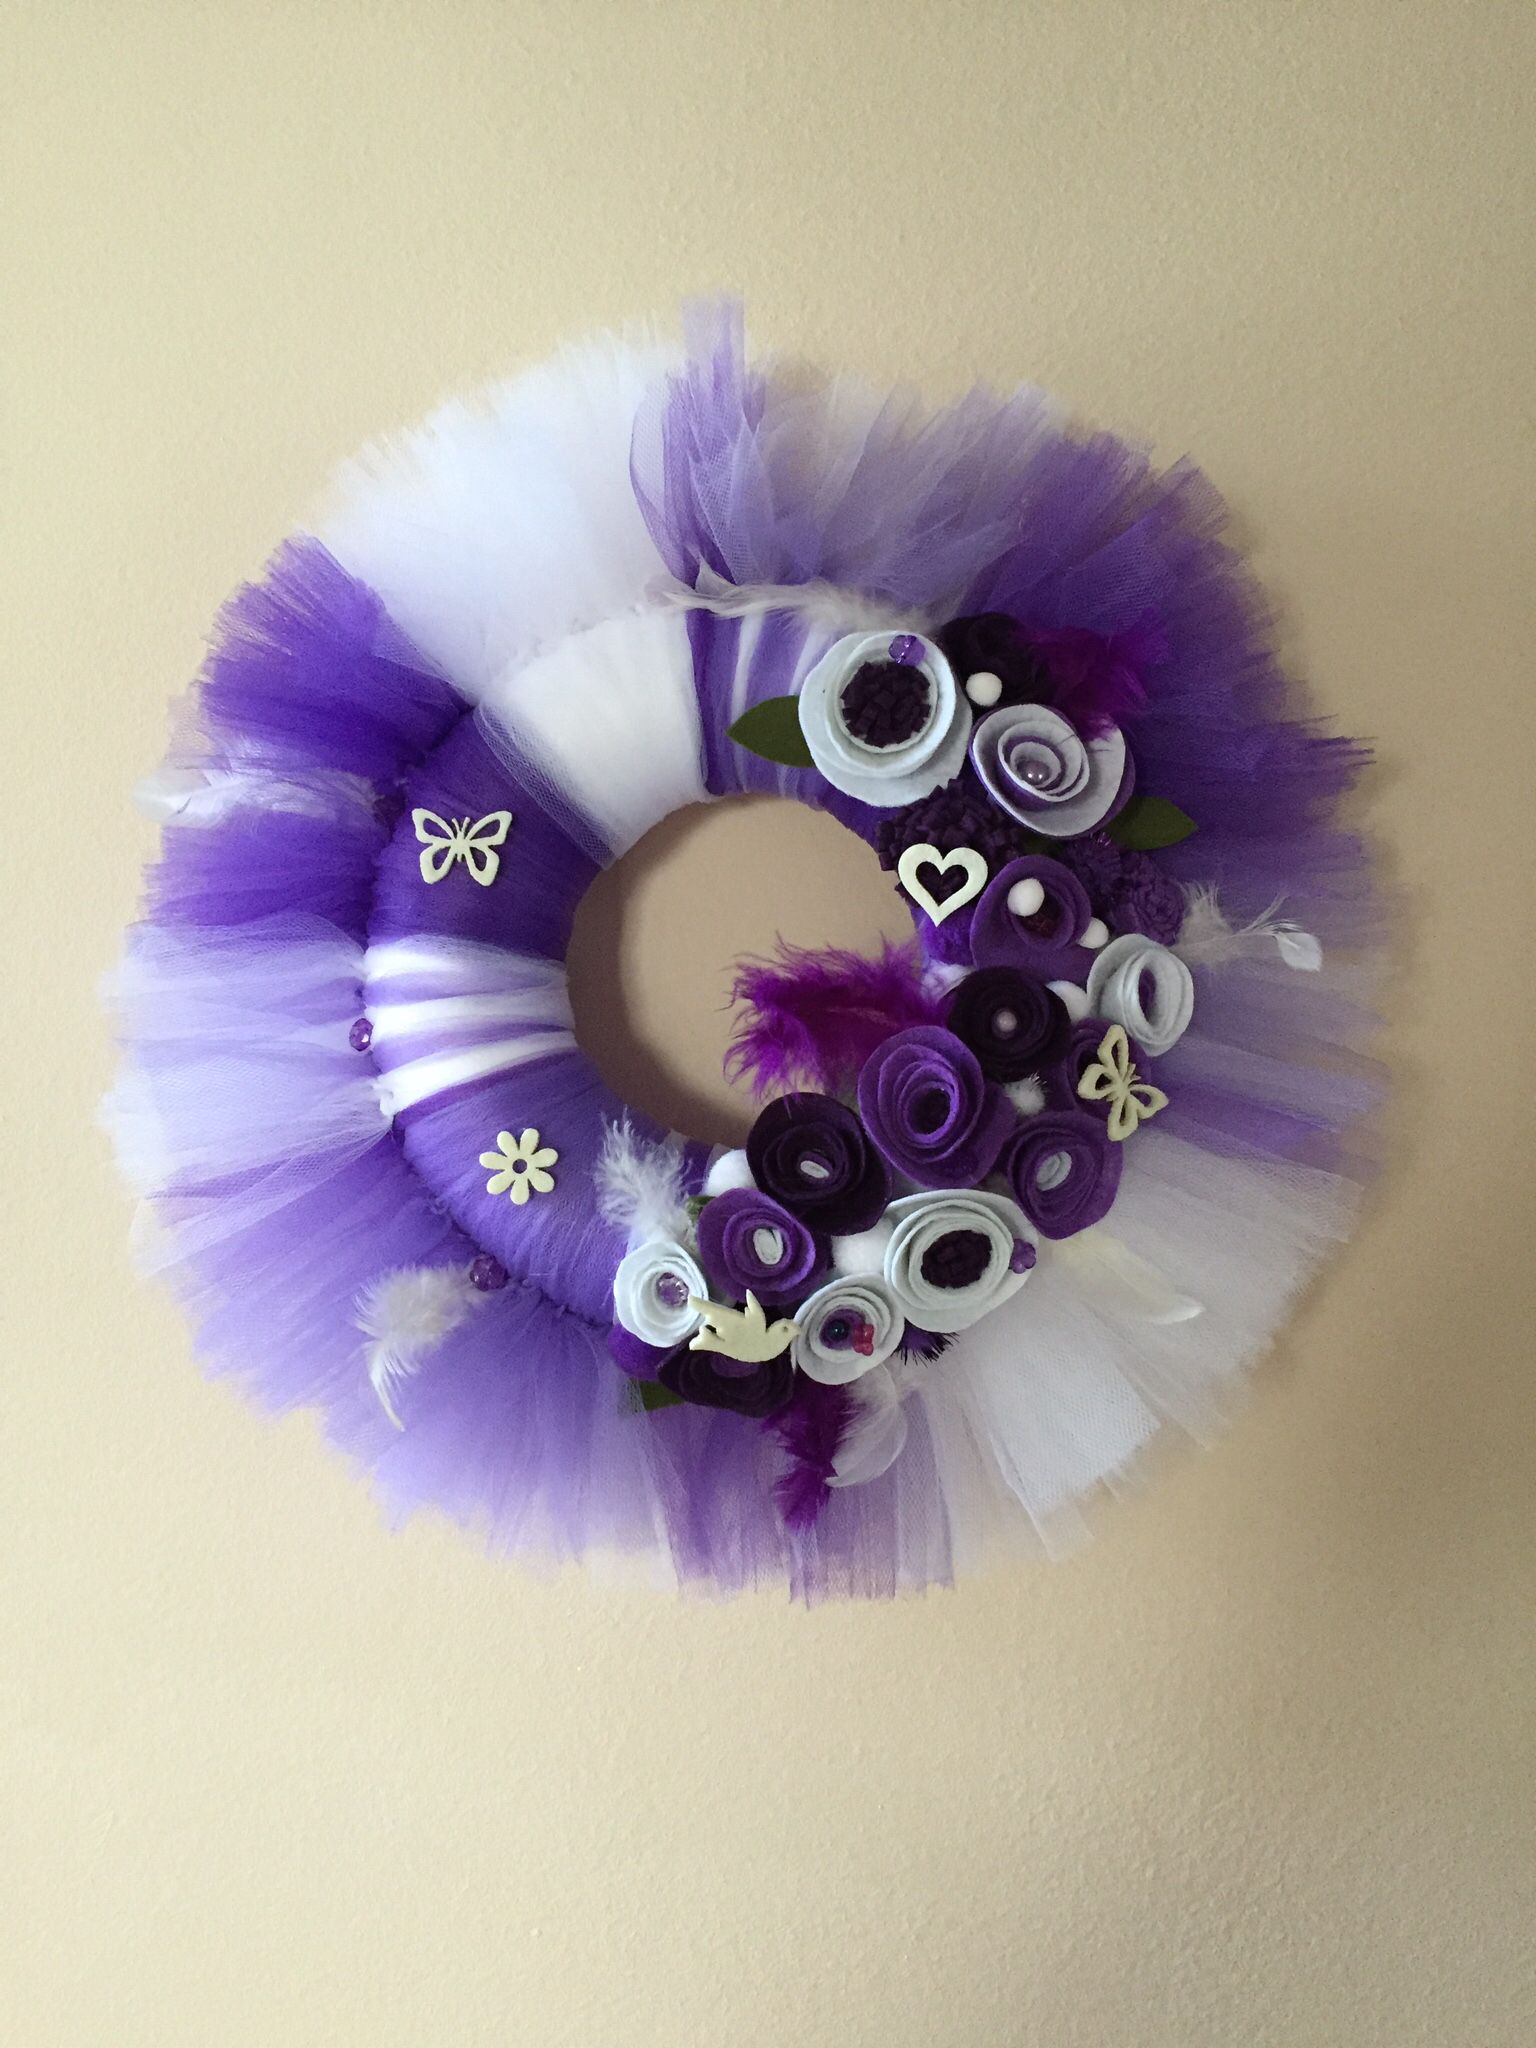 A nice purple-white tulle wreath. With handmade felt flowers, feathers and little butterflies.  More you can find at https://www.facebook.com/Moje-vence-995508700482994/